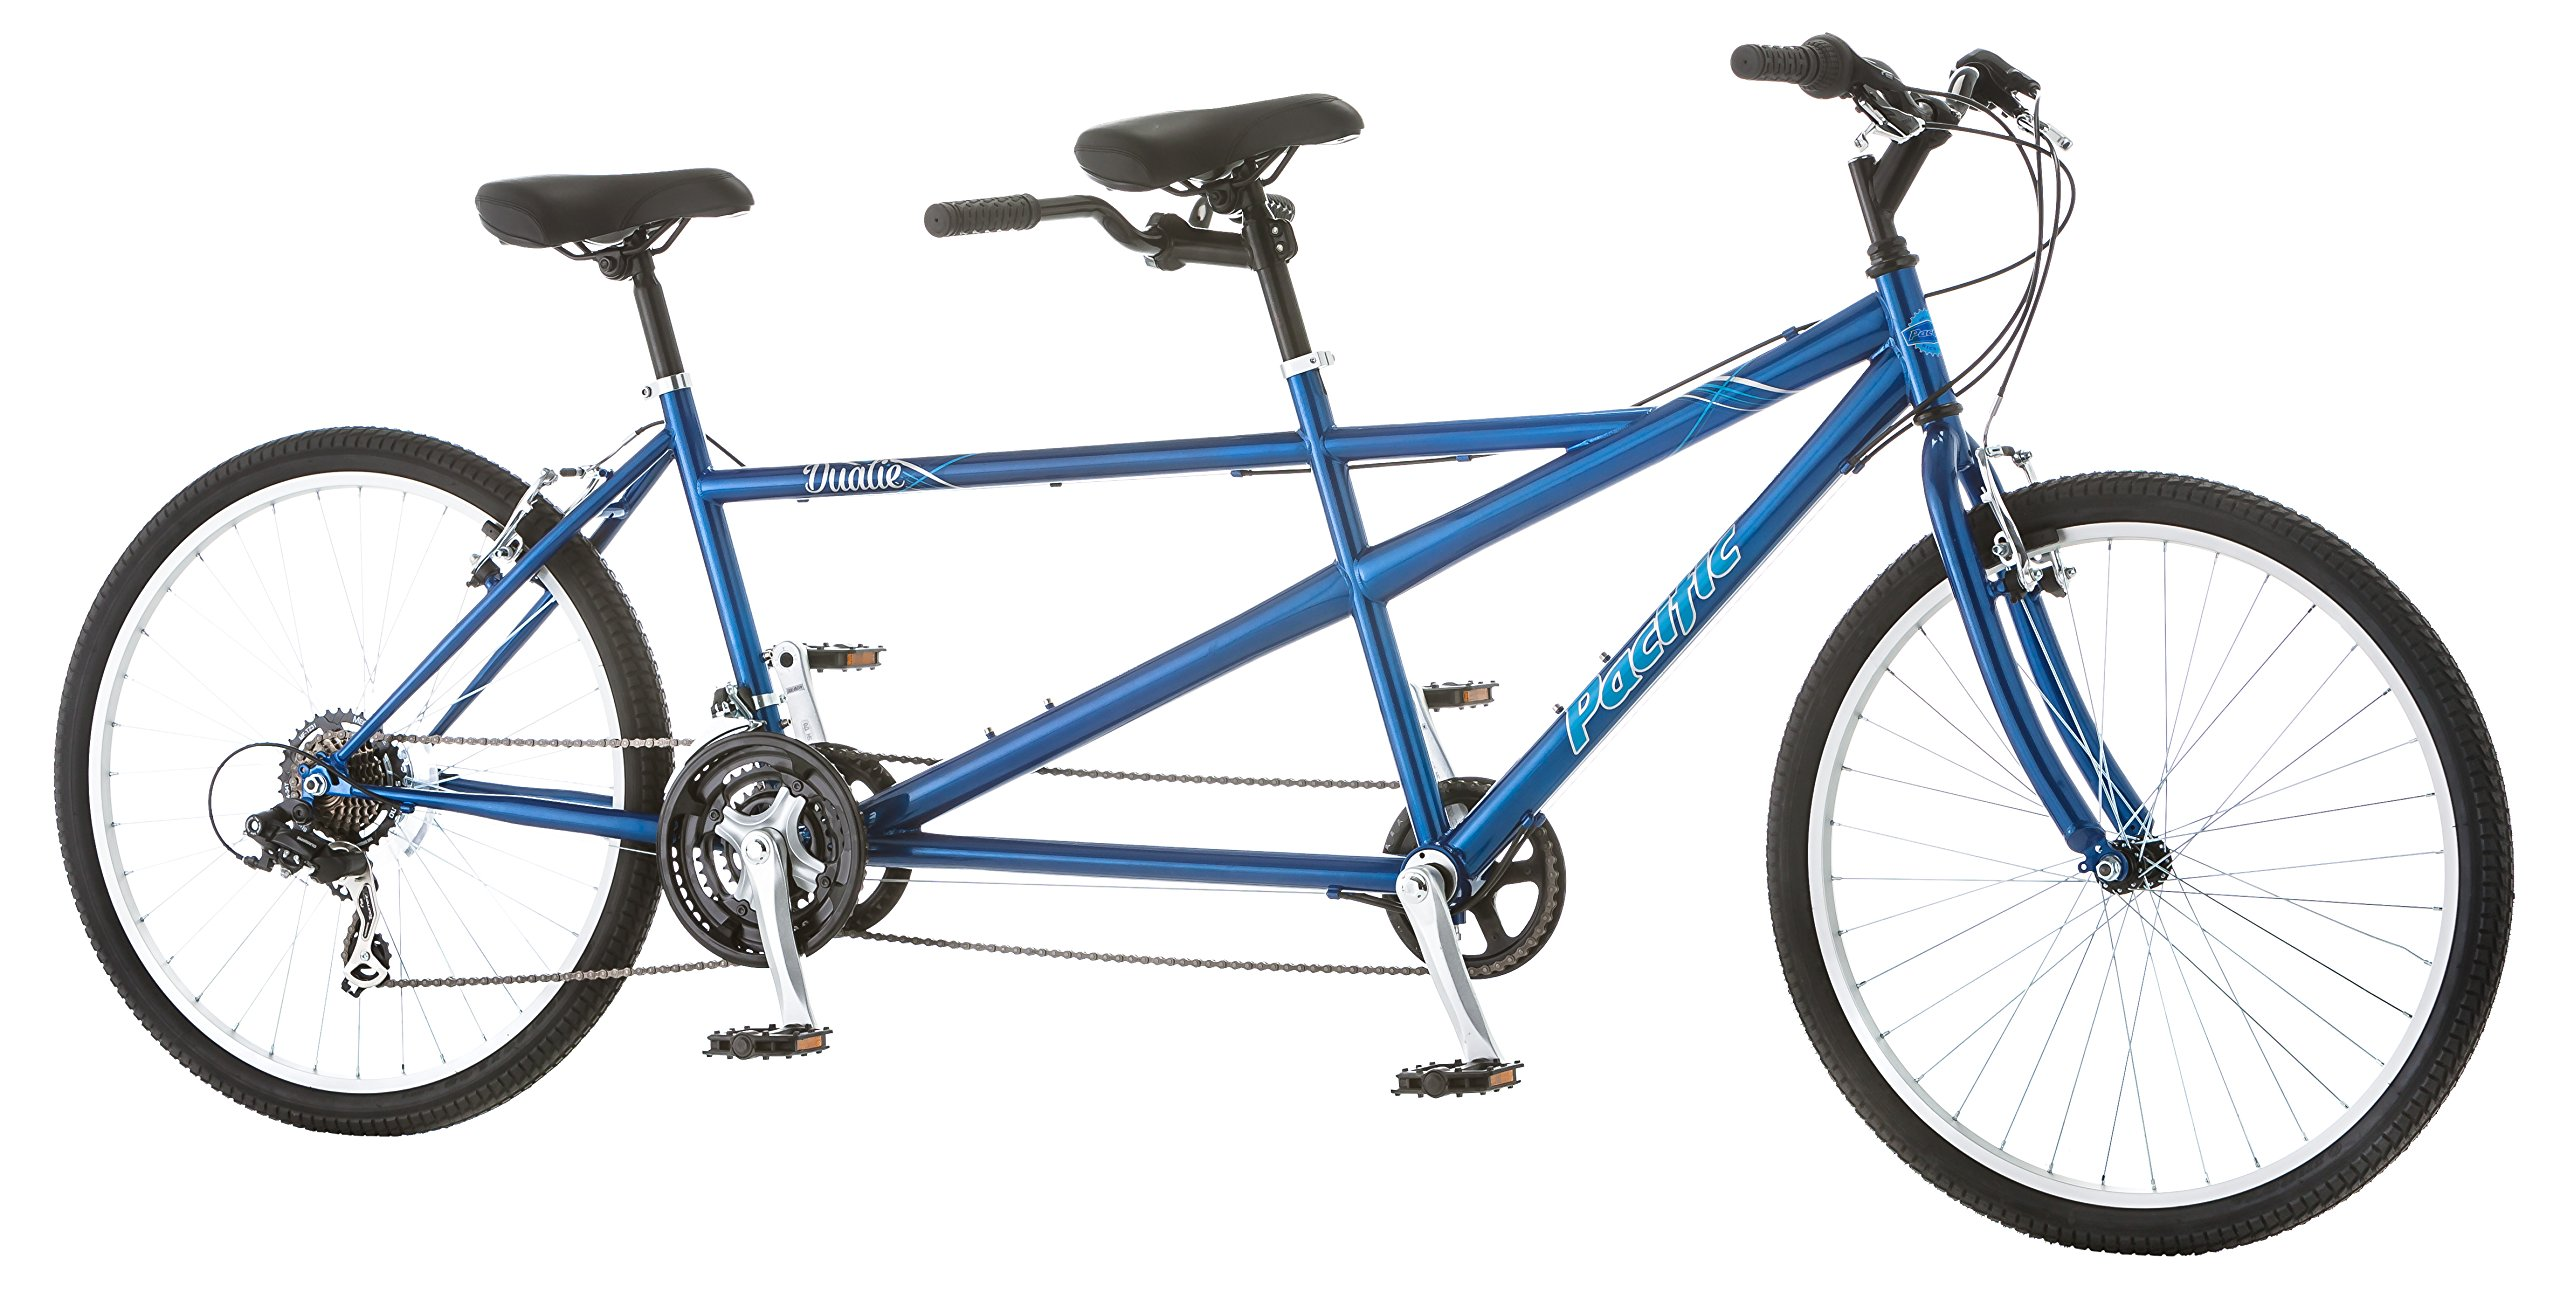 Pacific Dualie Tandem Bicycle w/ 26inch Wheels,Blue, One Size